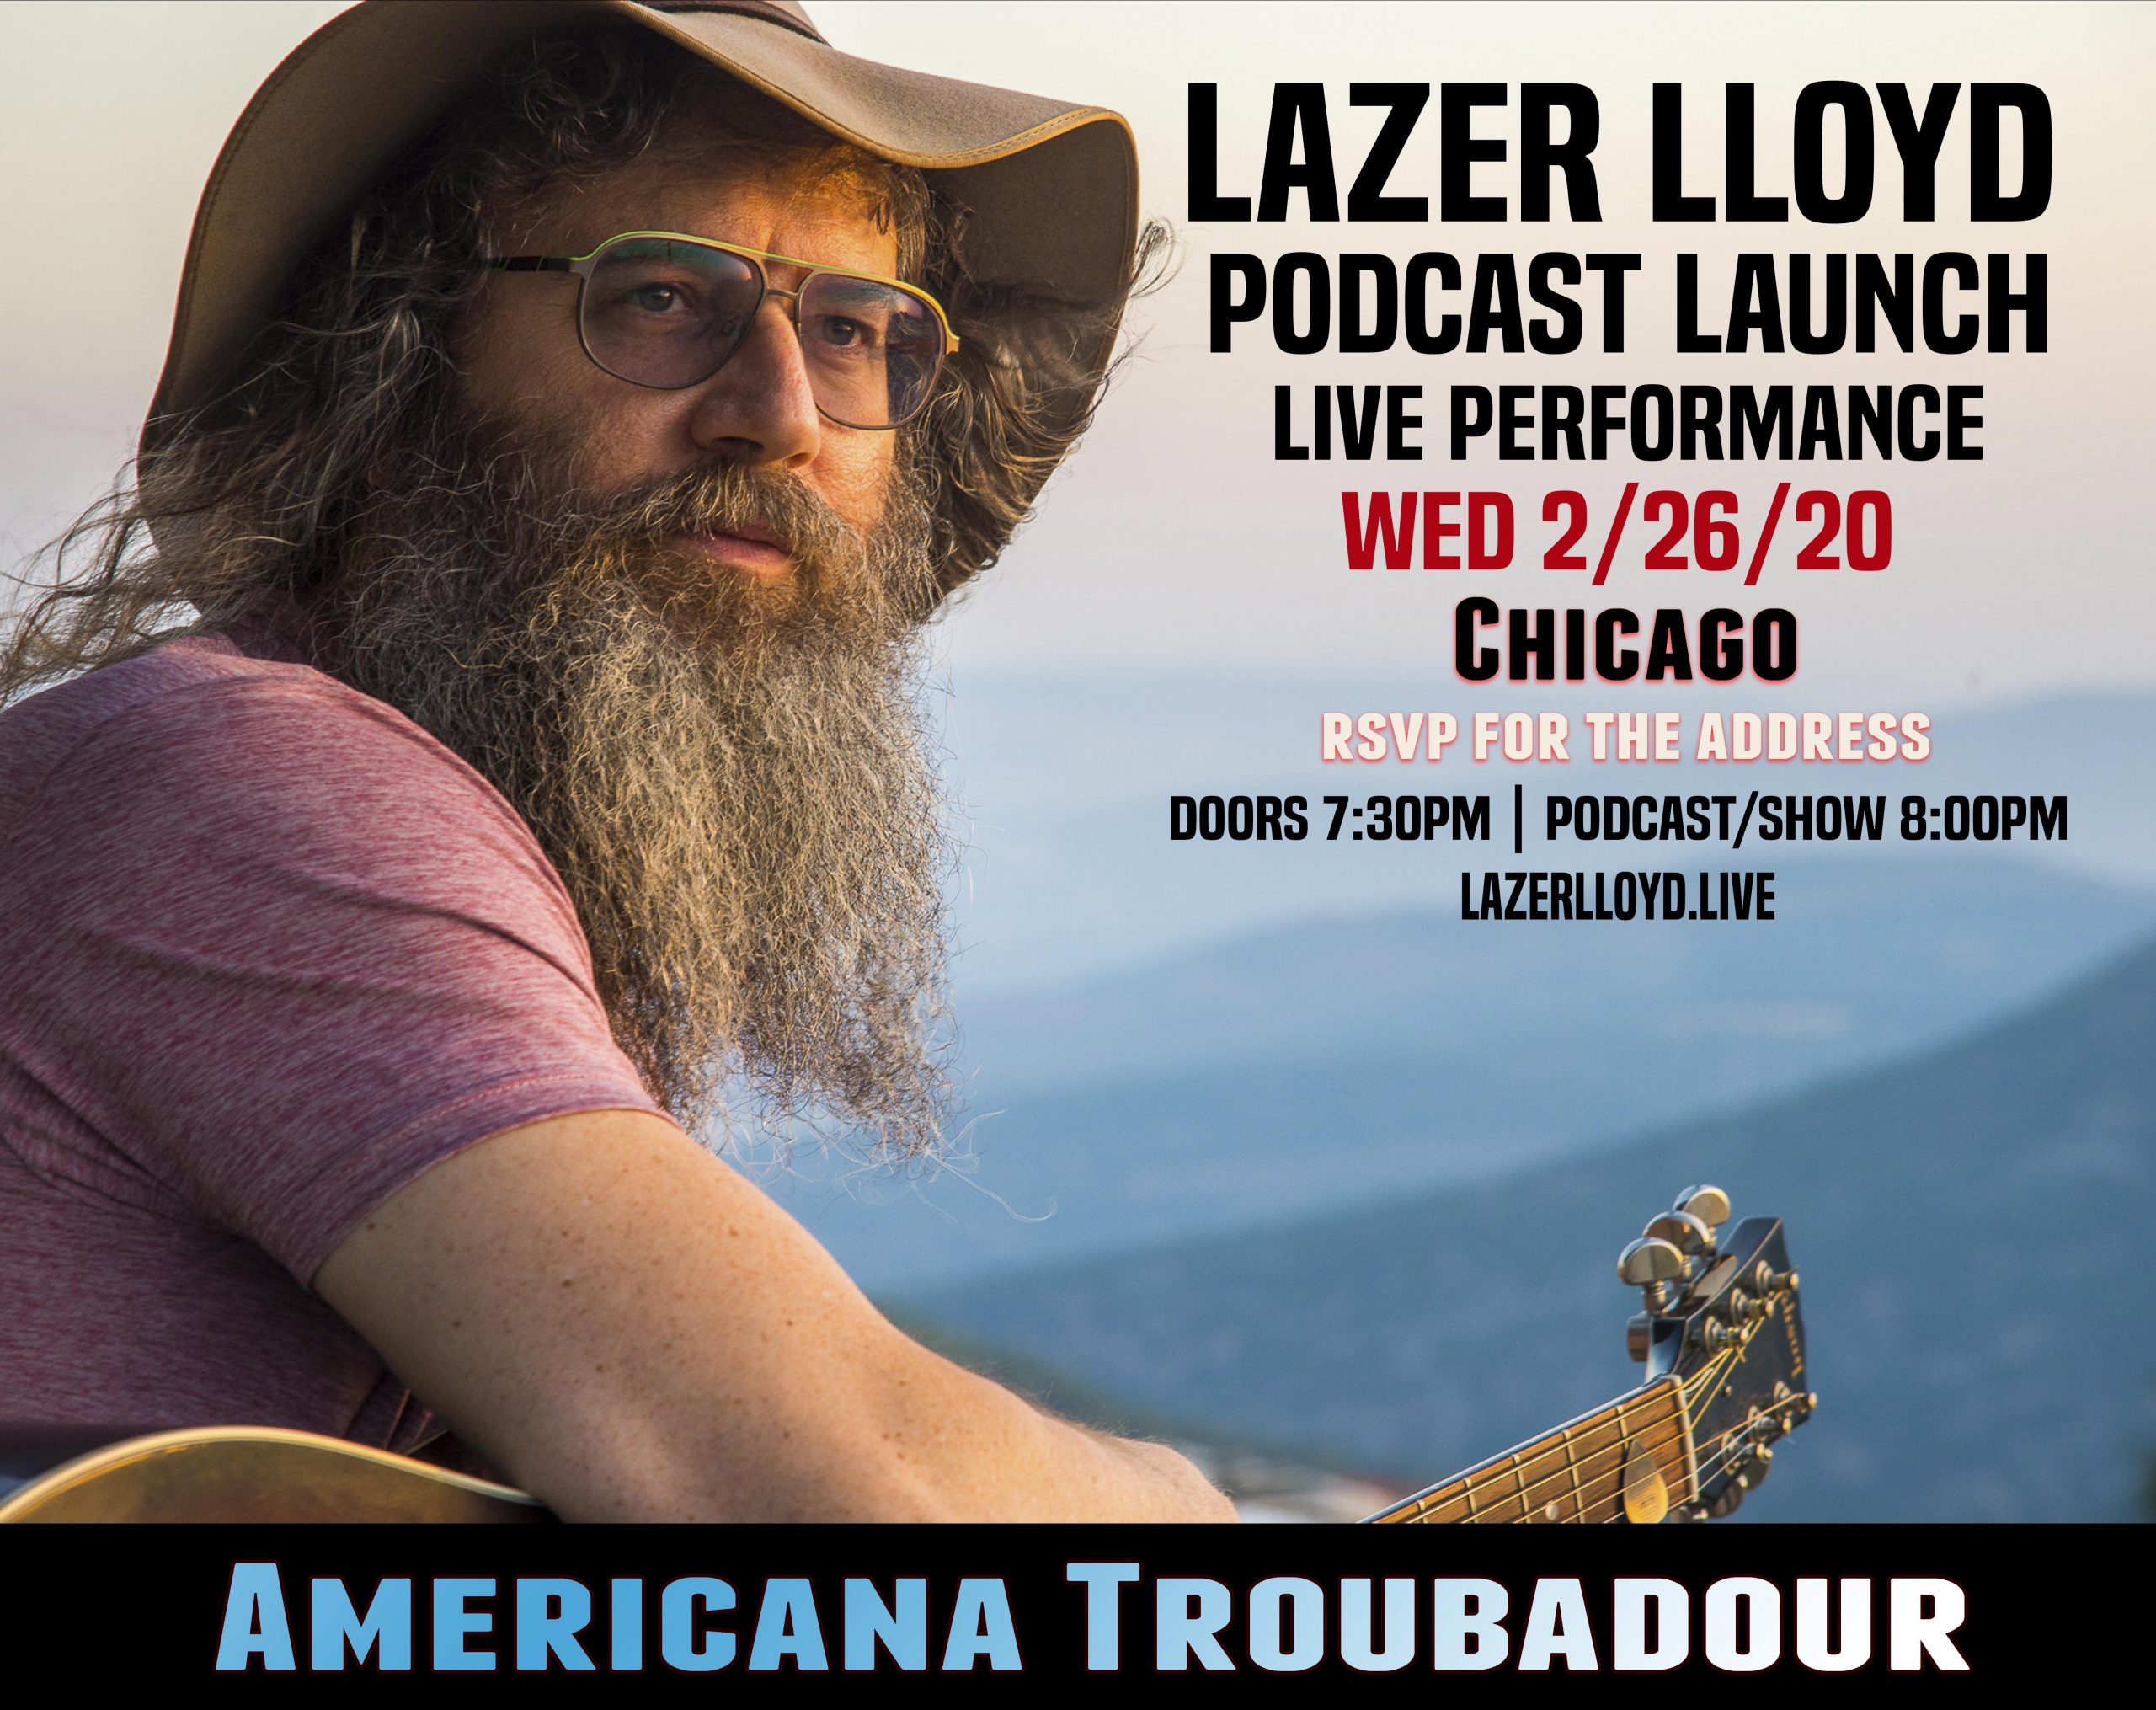 chitribe Lazer Lloyd in town from Israel on Feb 26th Wed